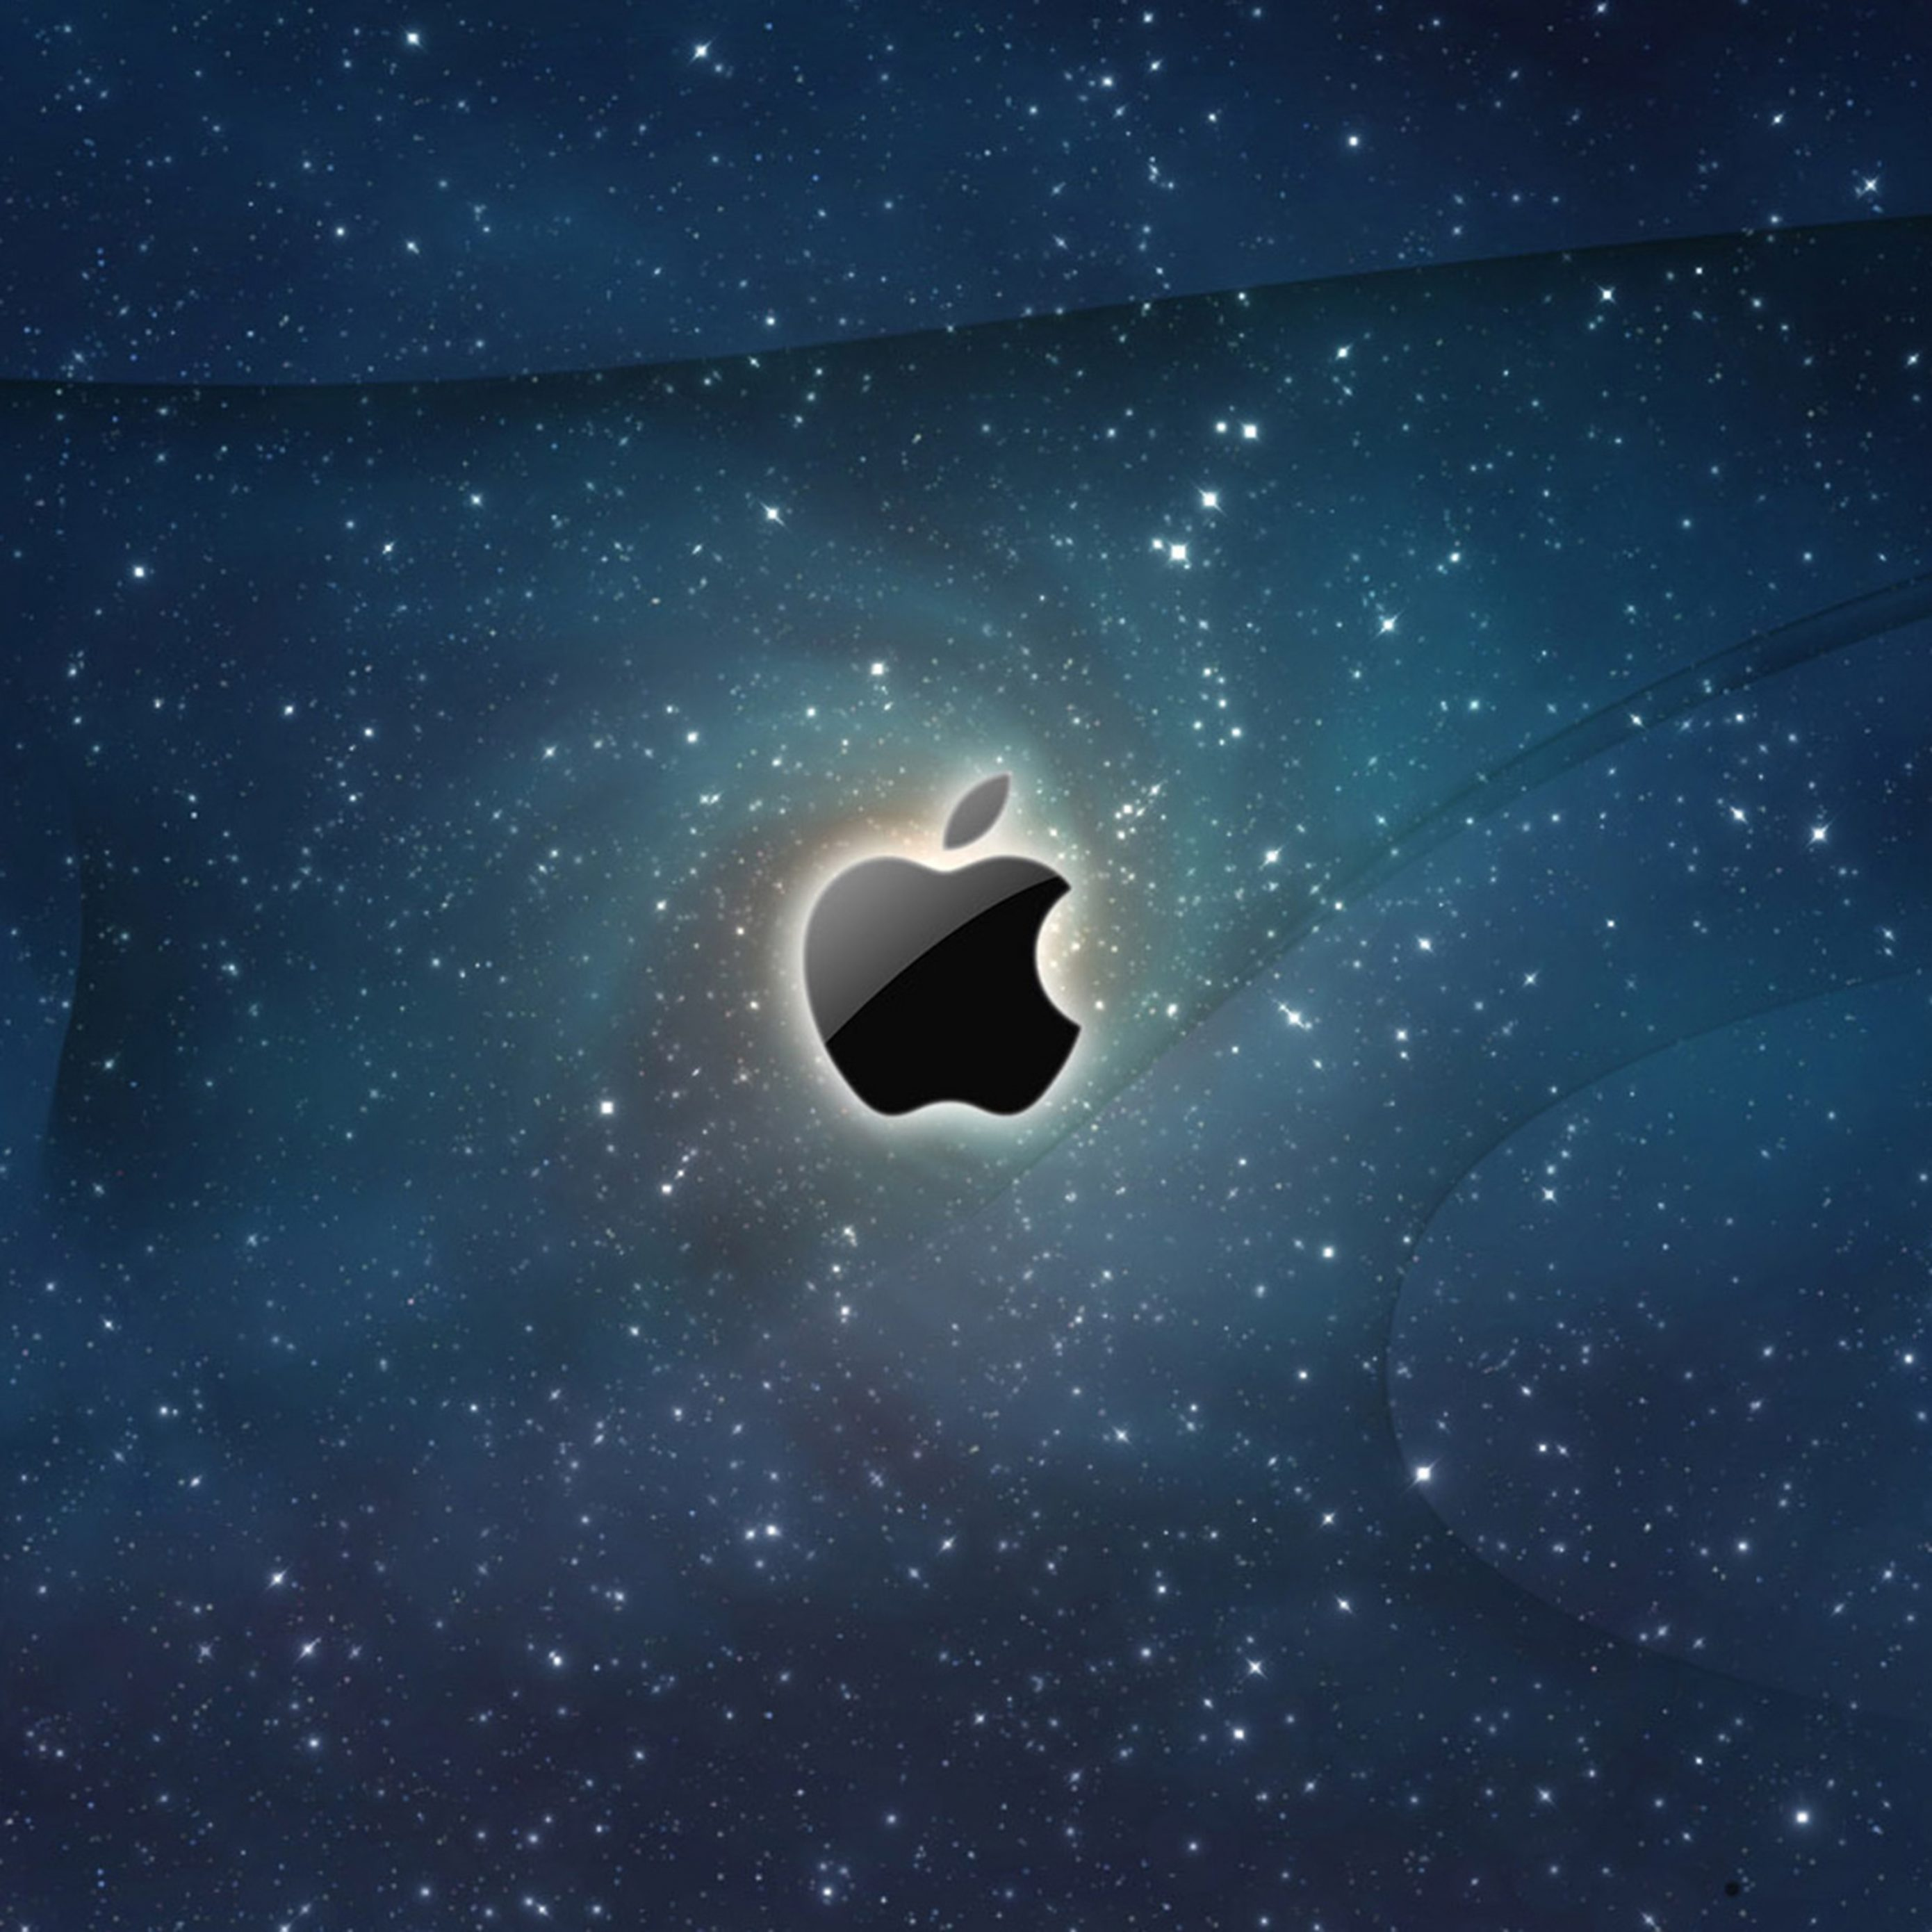 2780x2780 Parallax wallpaper 4k Apple Space Ipad Wallpaper 2780x2780 pixels resolution